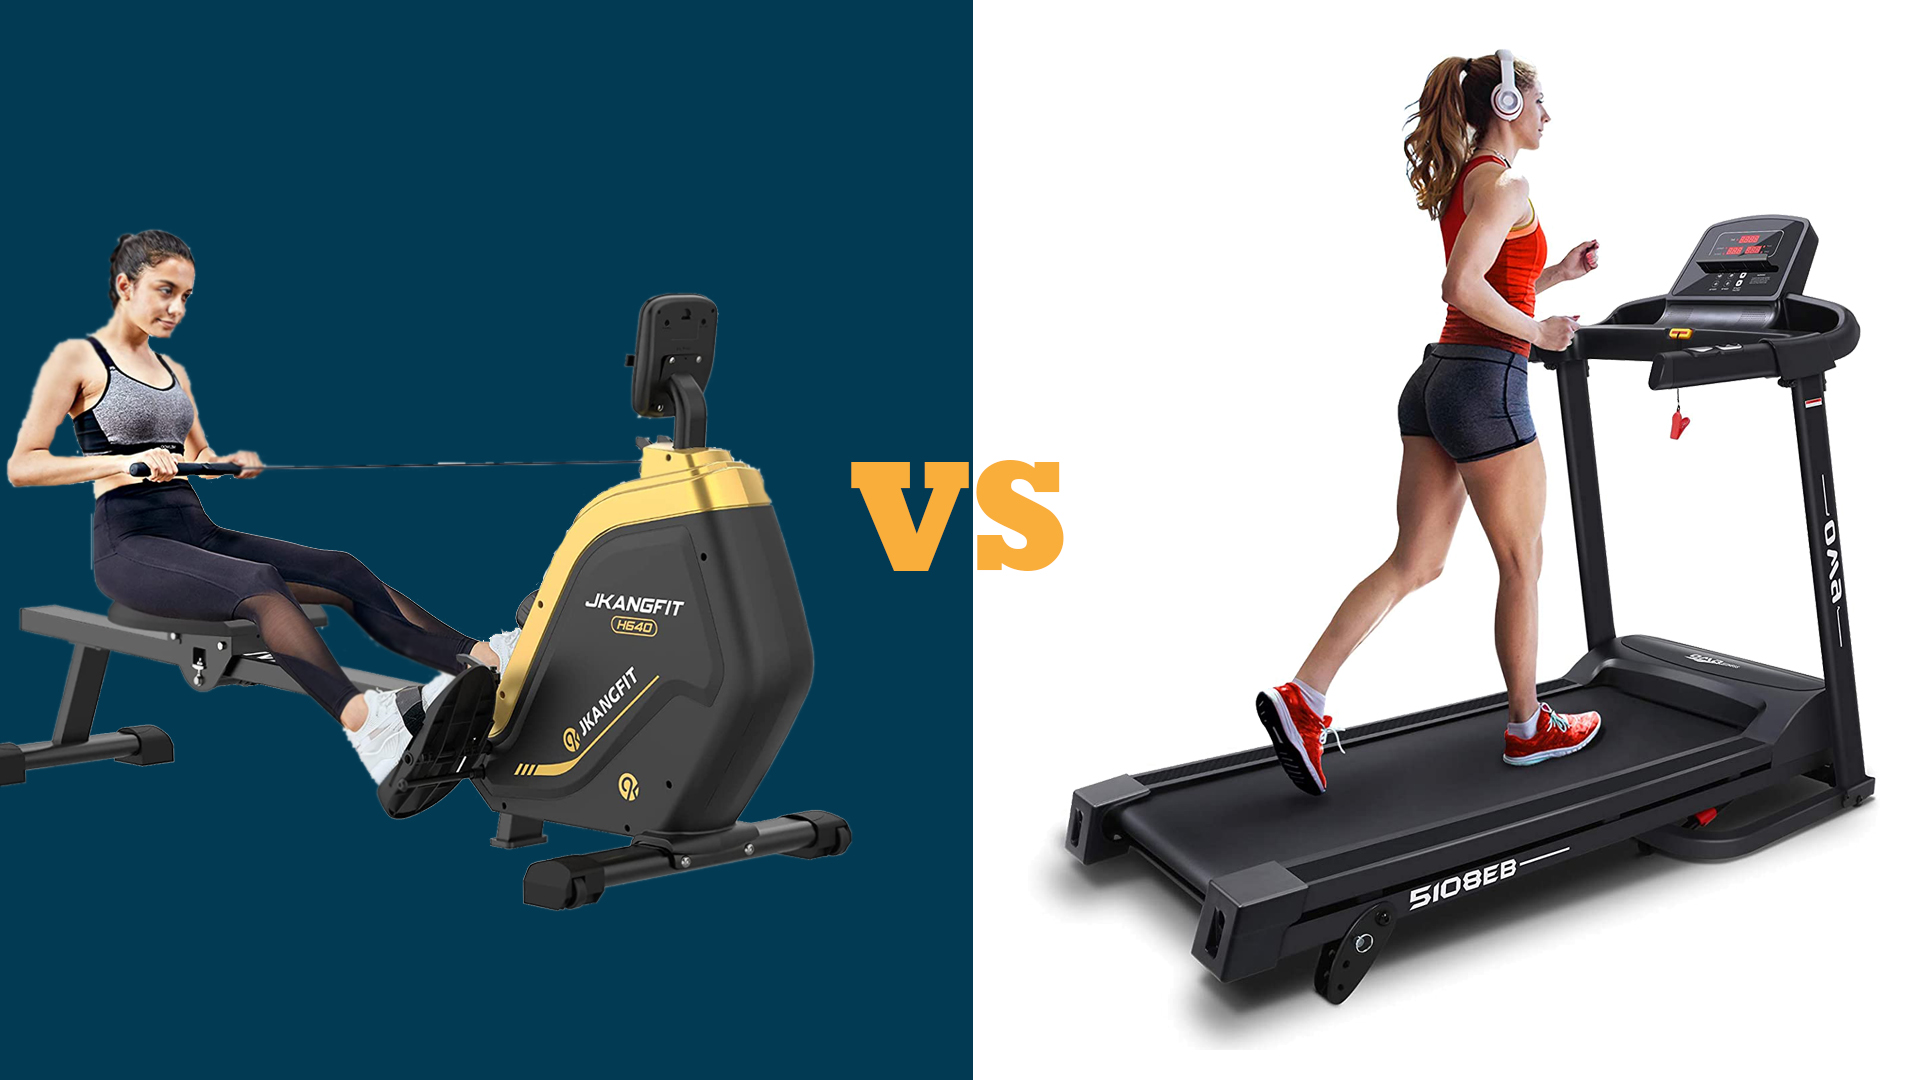 Rowing Machines vs Treadmills: Which is best for home use?